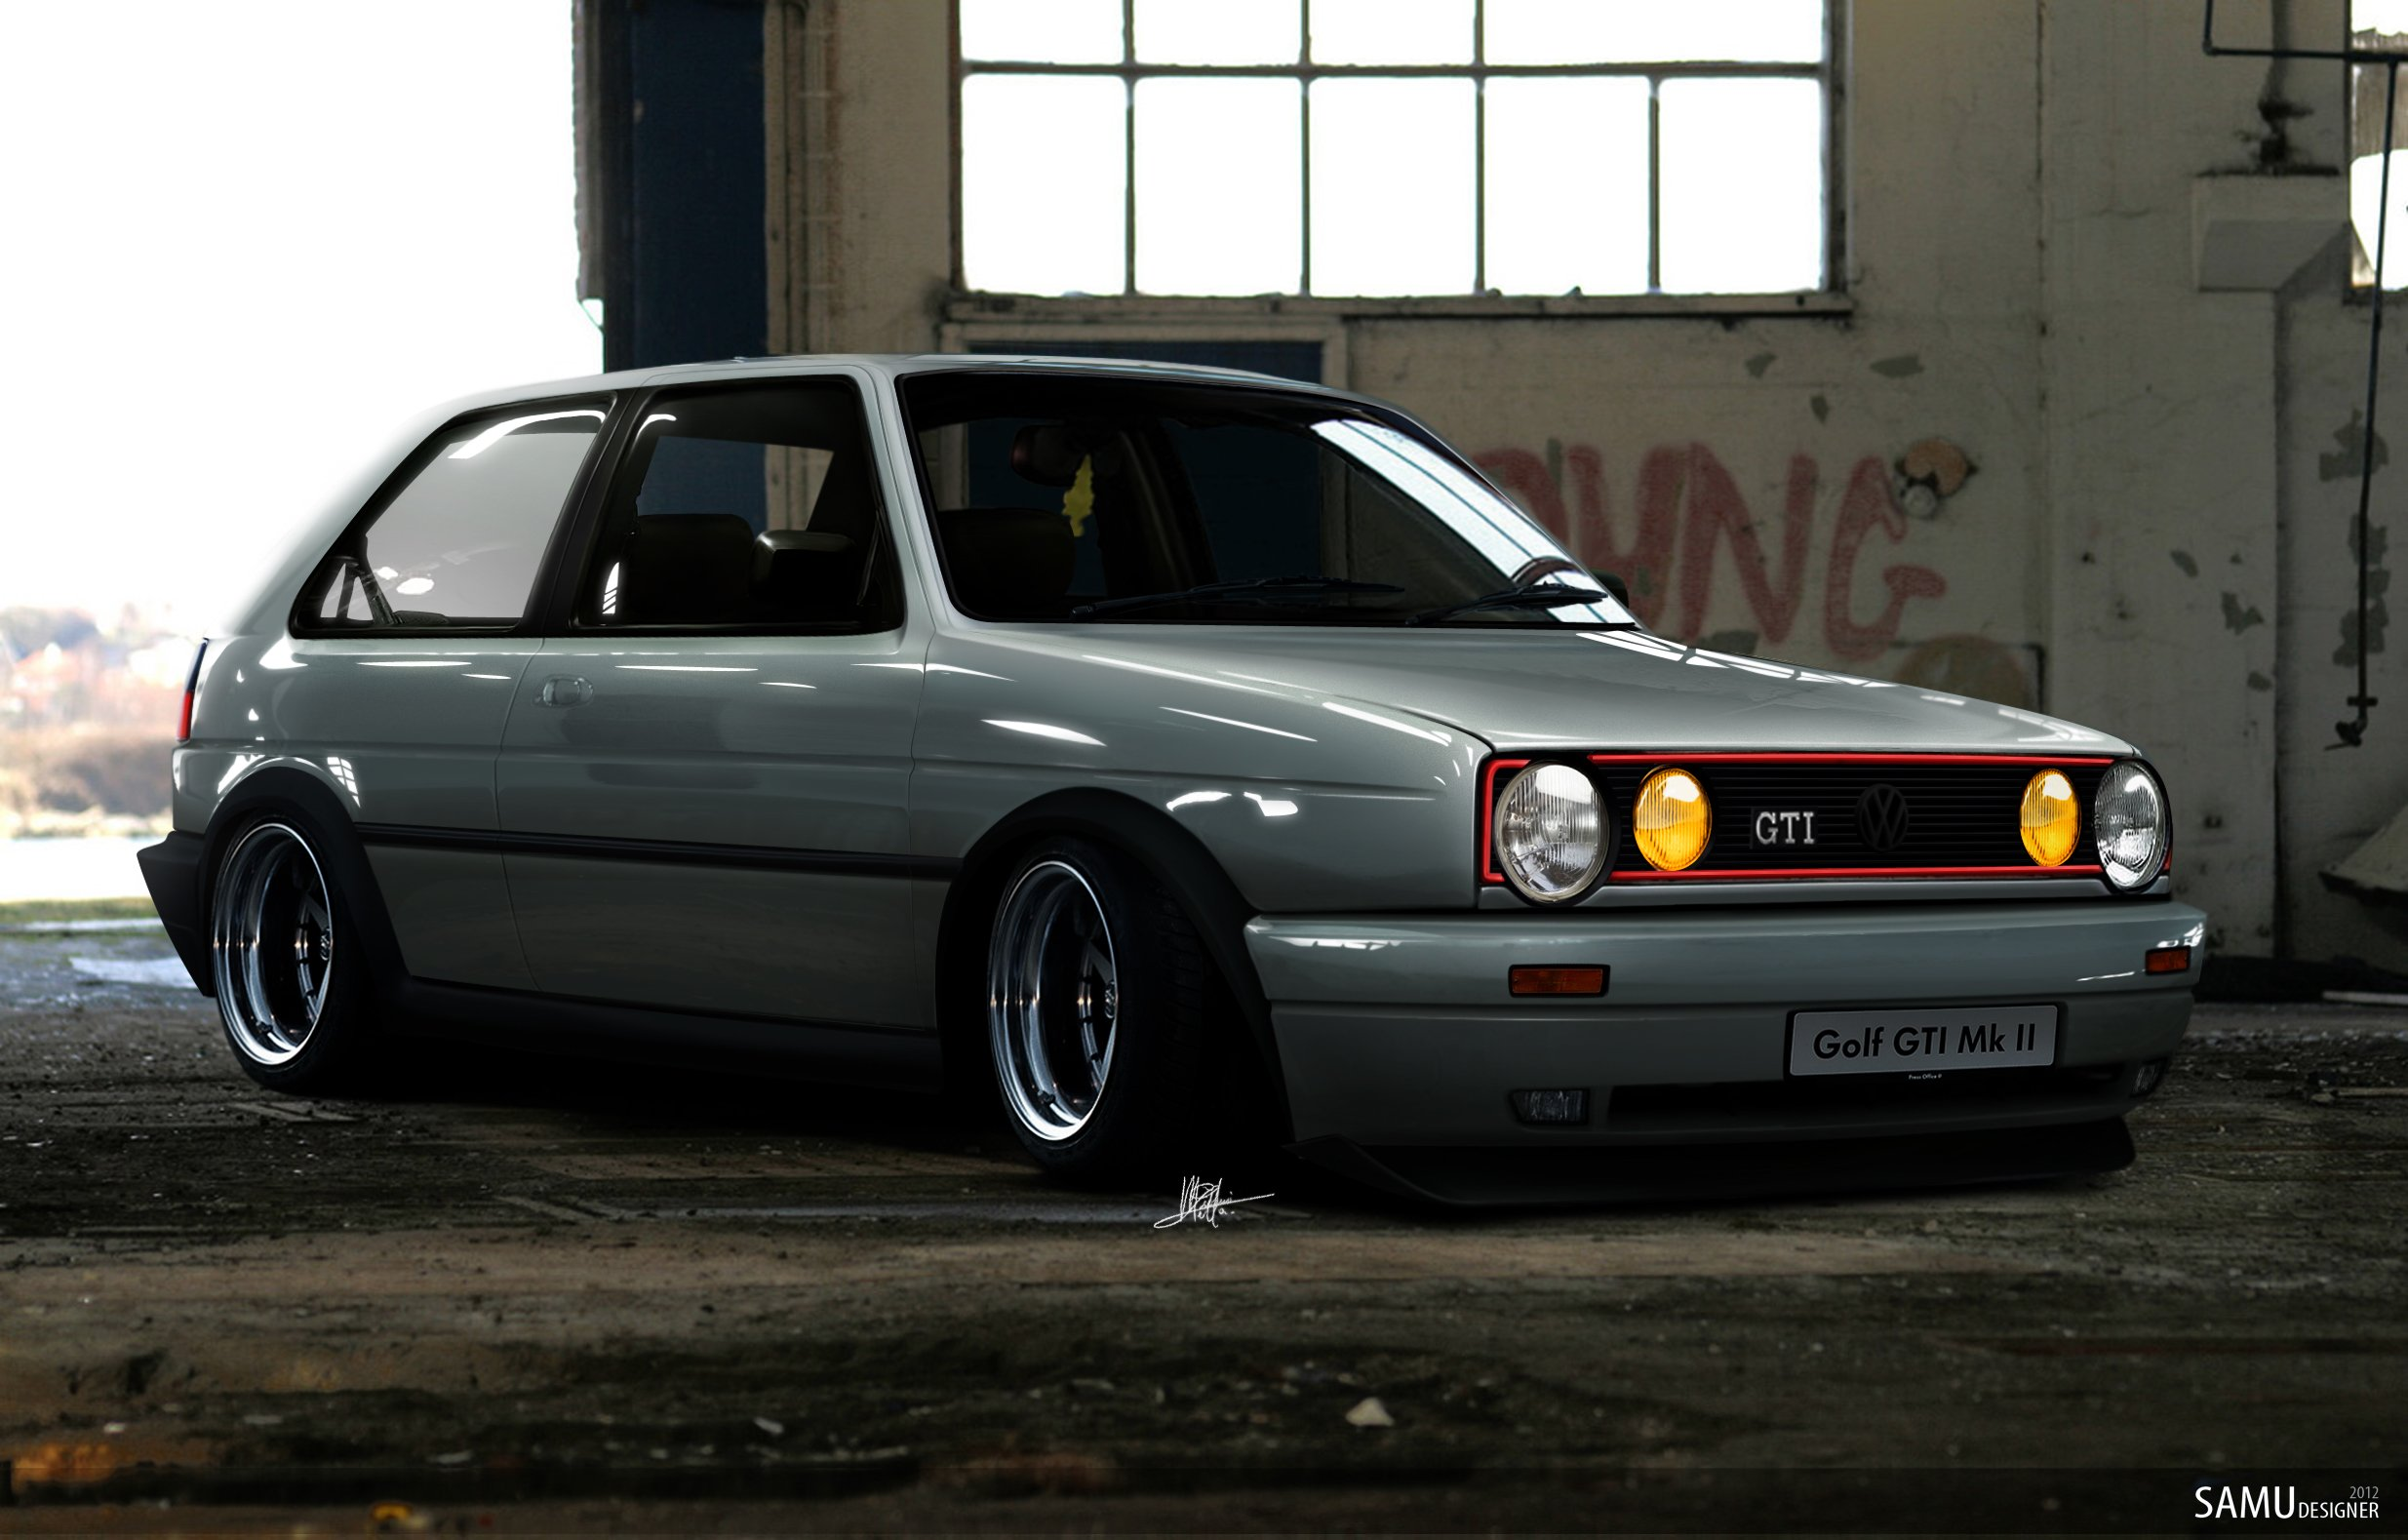 Golf MK2 GTI Euro wallpaper 2469x1579 564024 WallpaperUP 2469x1579